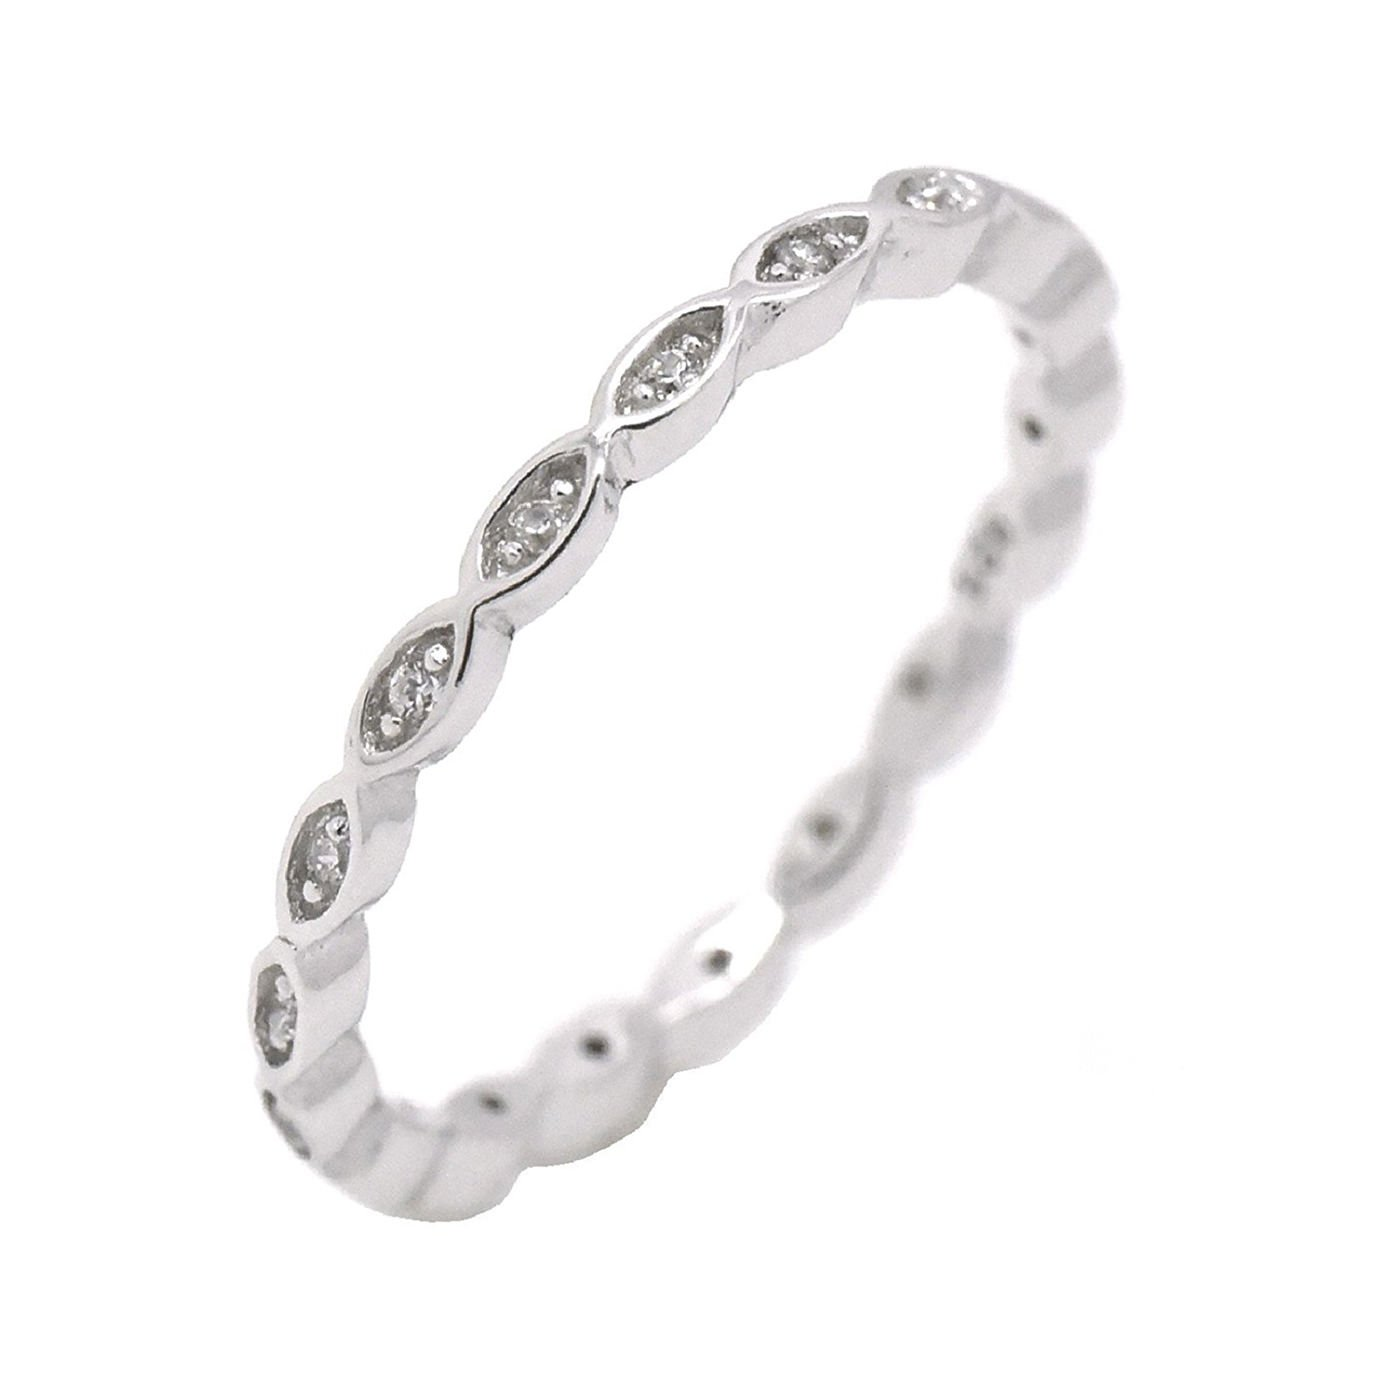 Eternity Band Sterling Silver Clear Cubic Zirconia Midi Knuckle Stackable Promise Ring Size 12